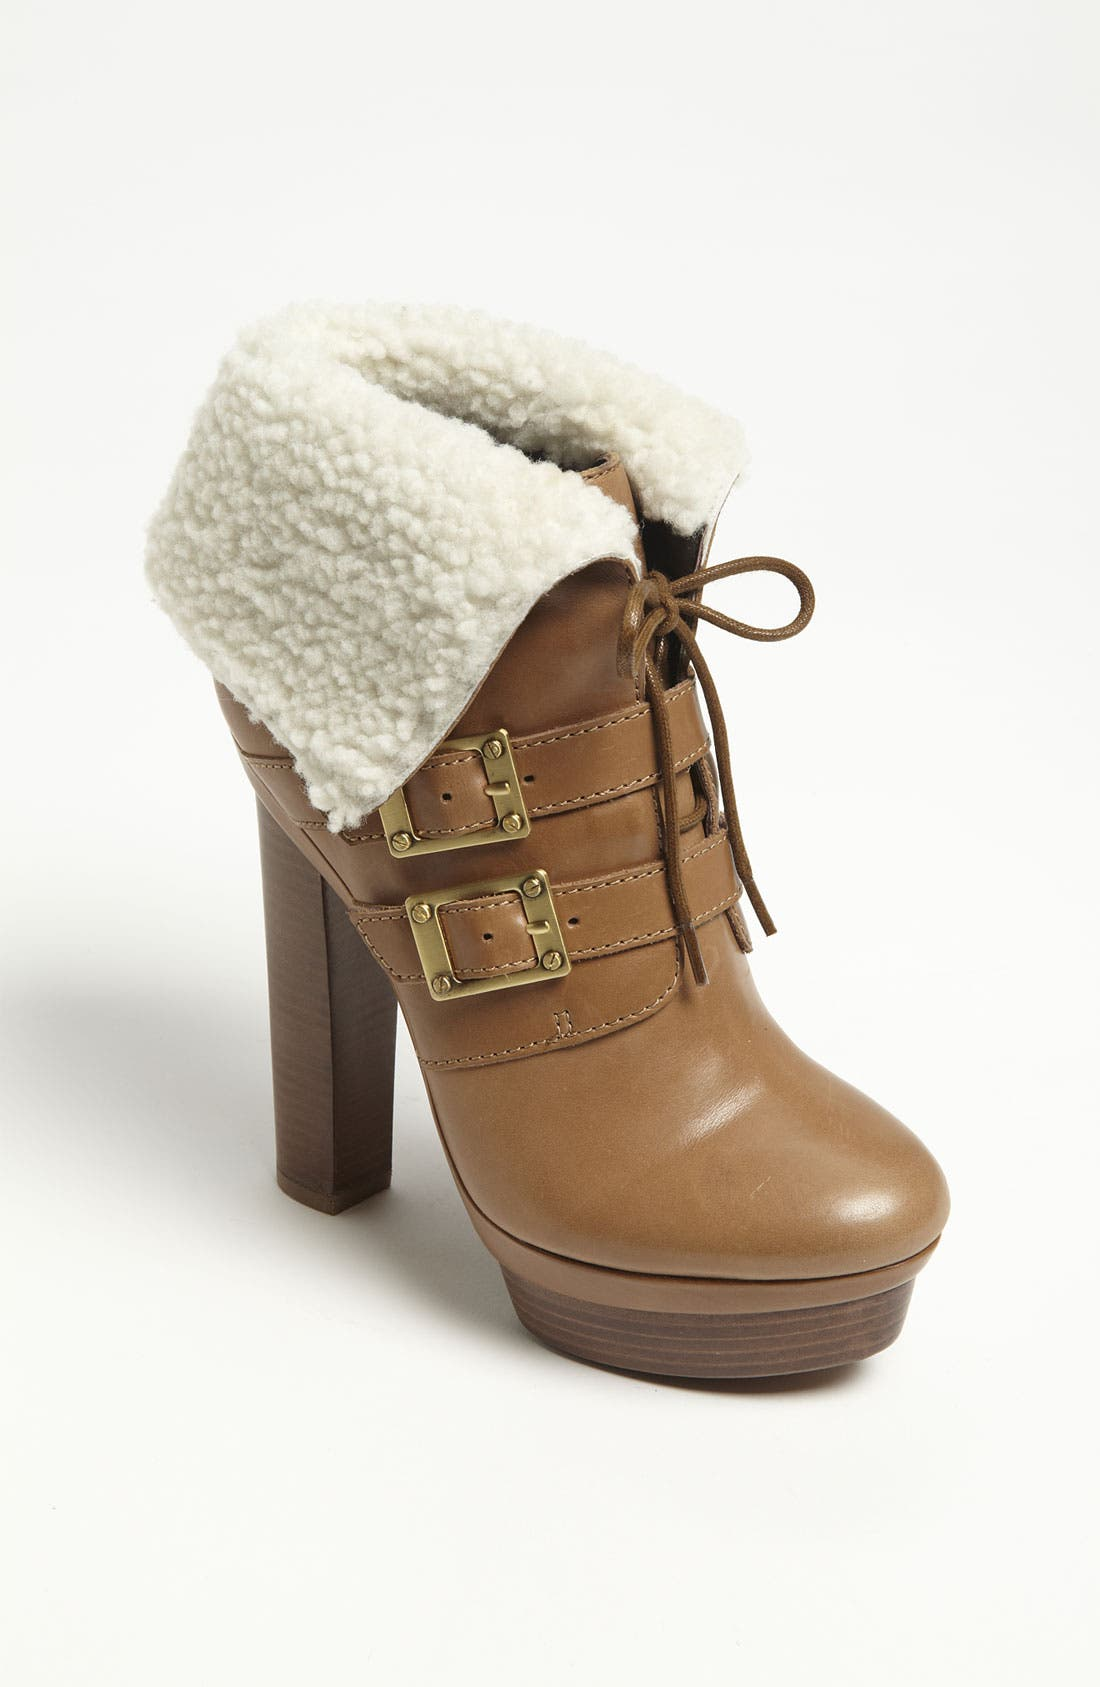 Main Image - Rachel Zoe 'Piper' Boot